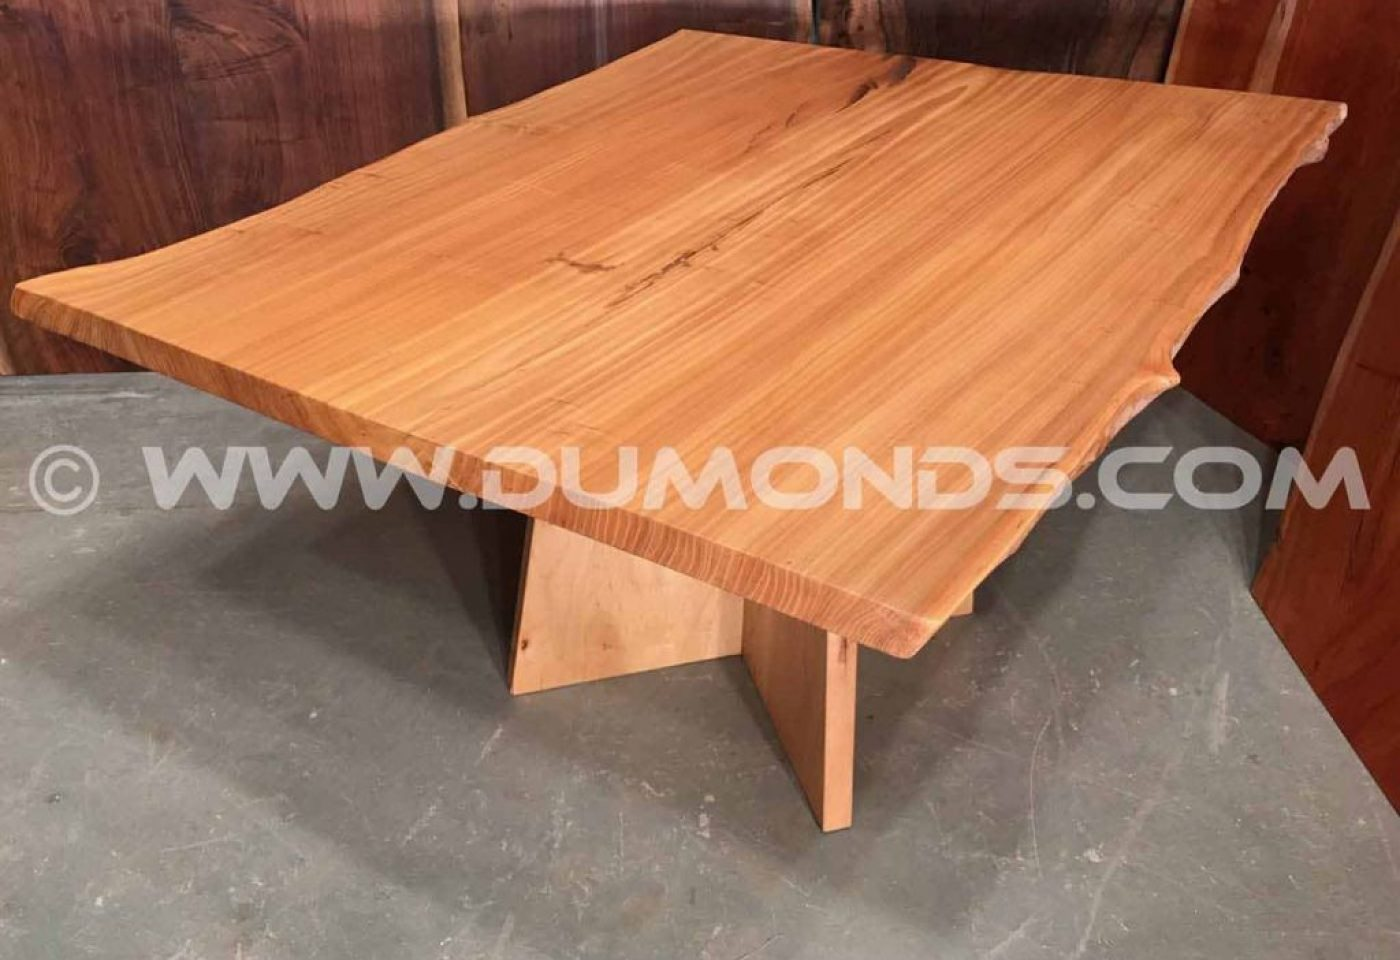 URBAN SALVAGED SIBERIAN ELM LIVE EDGE SLAB TABLE WITH MAPLE PEDESTAL BASE